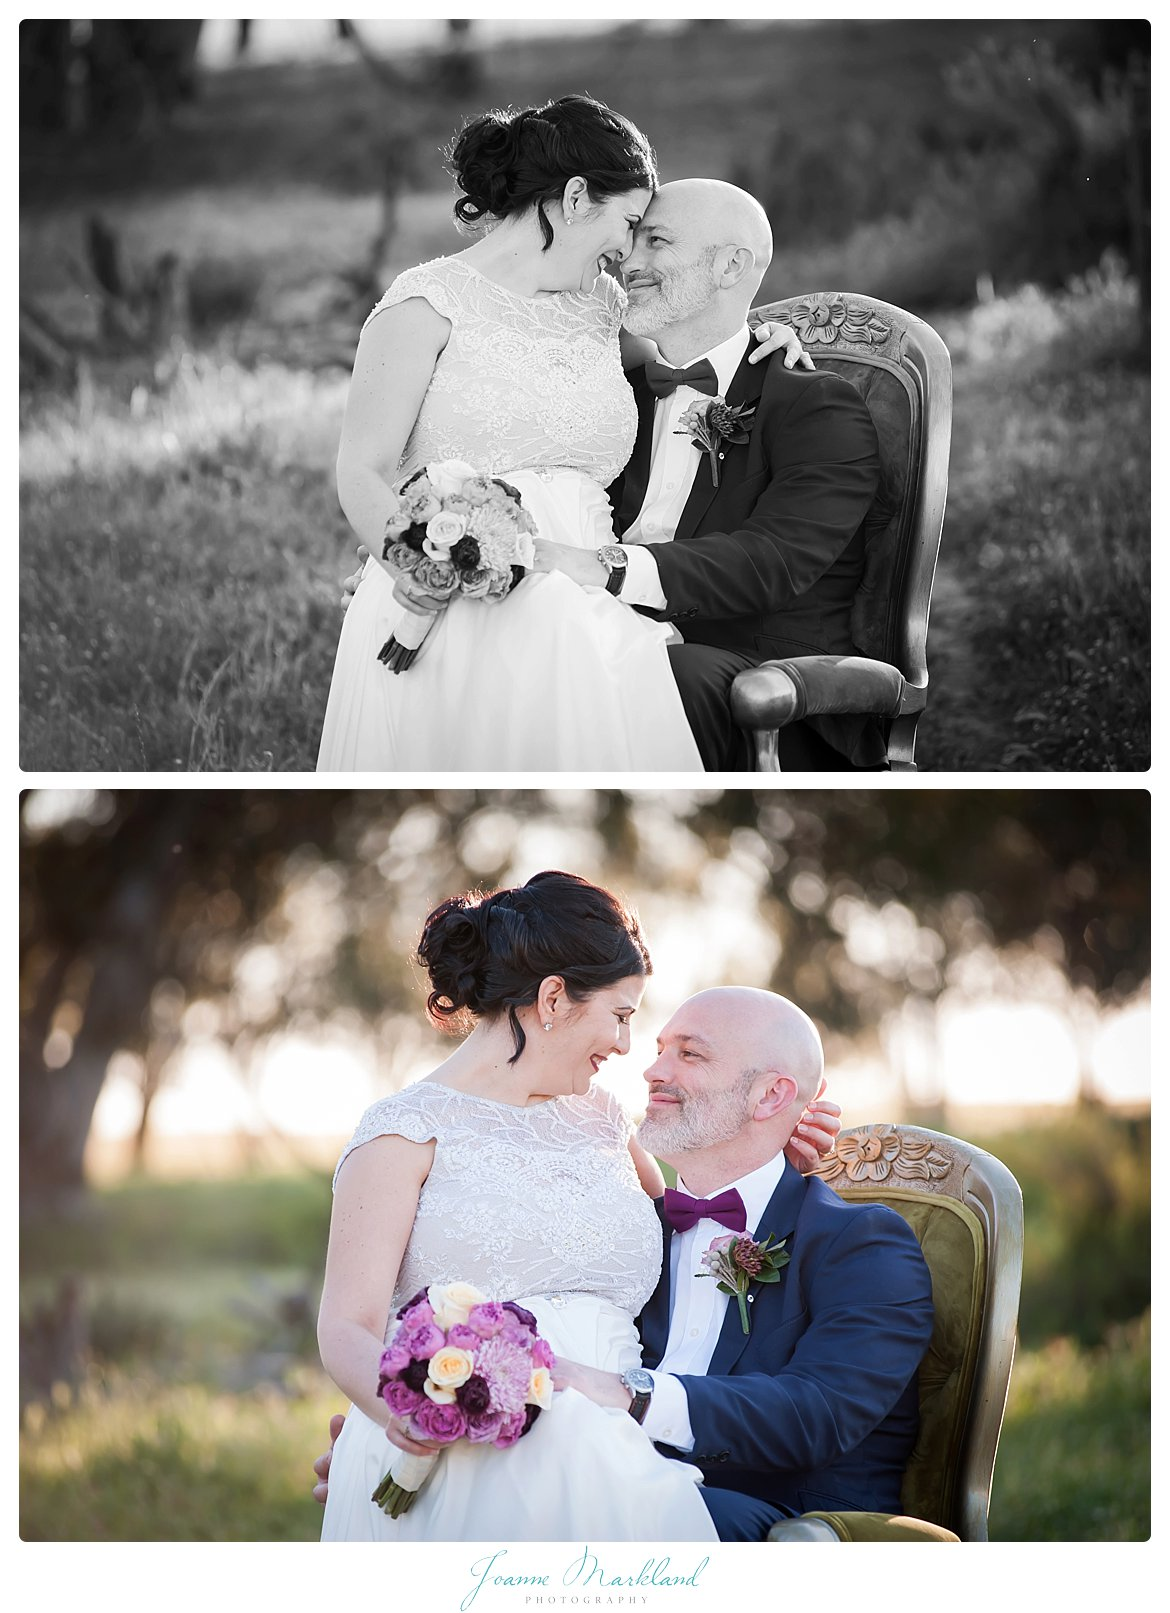 boorwater-wedding-hopefield-west-coast-cape-town-joanne-markland-photography-040